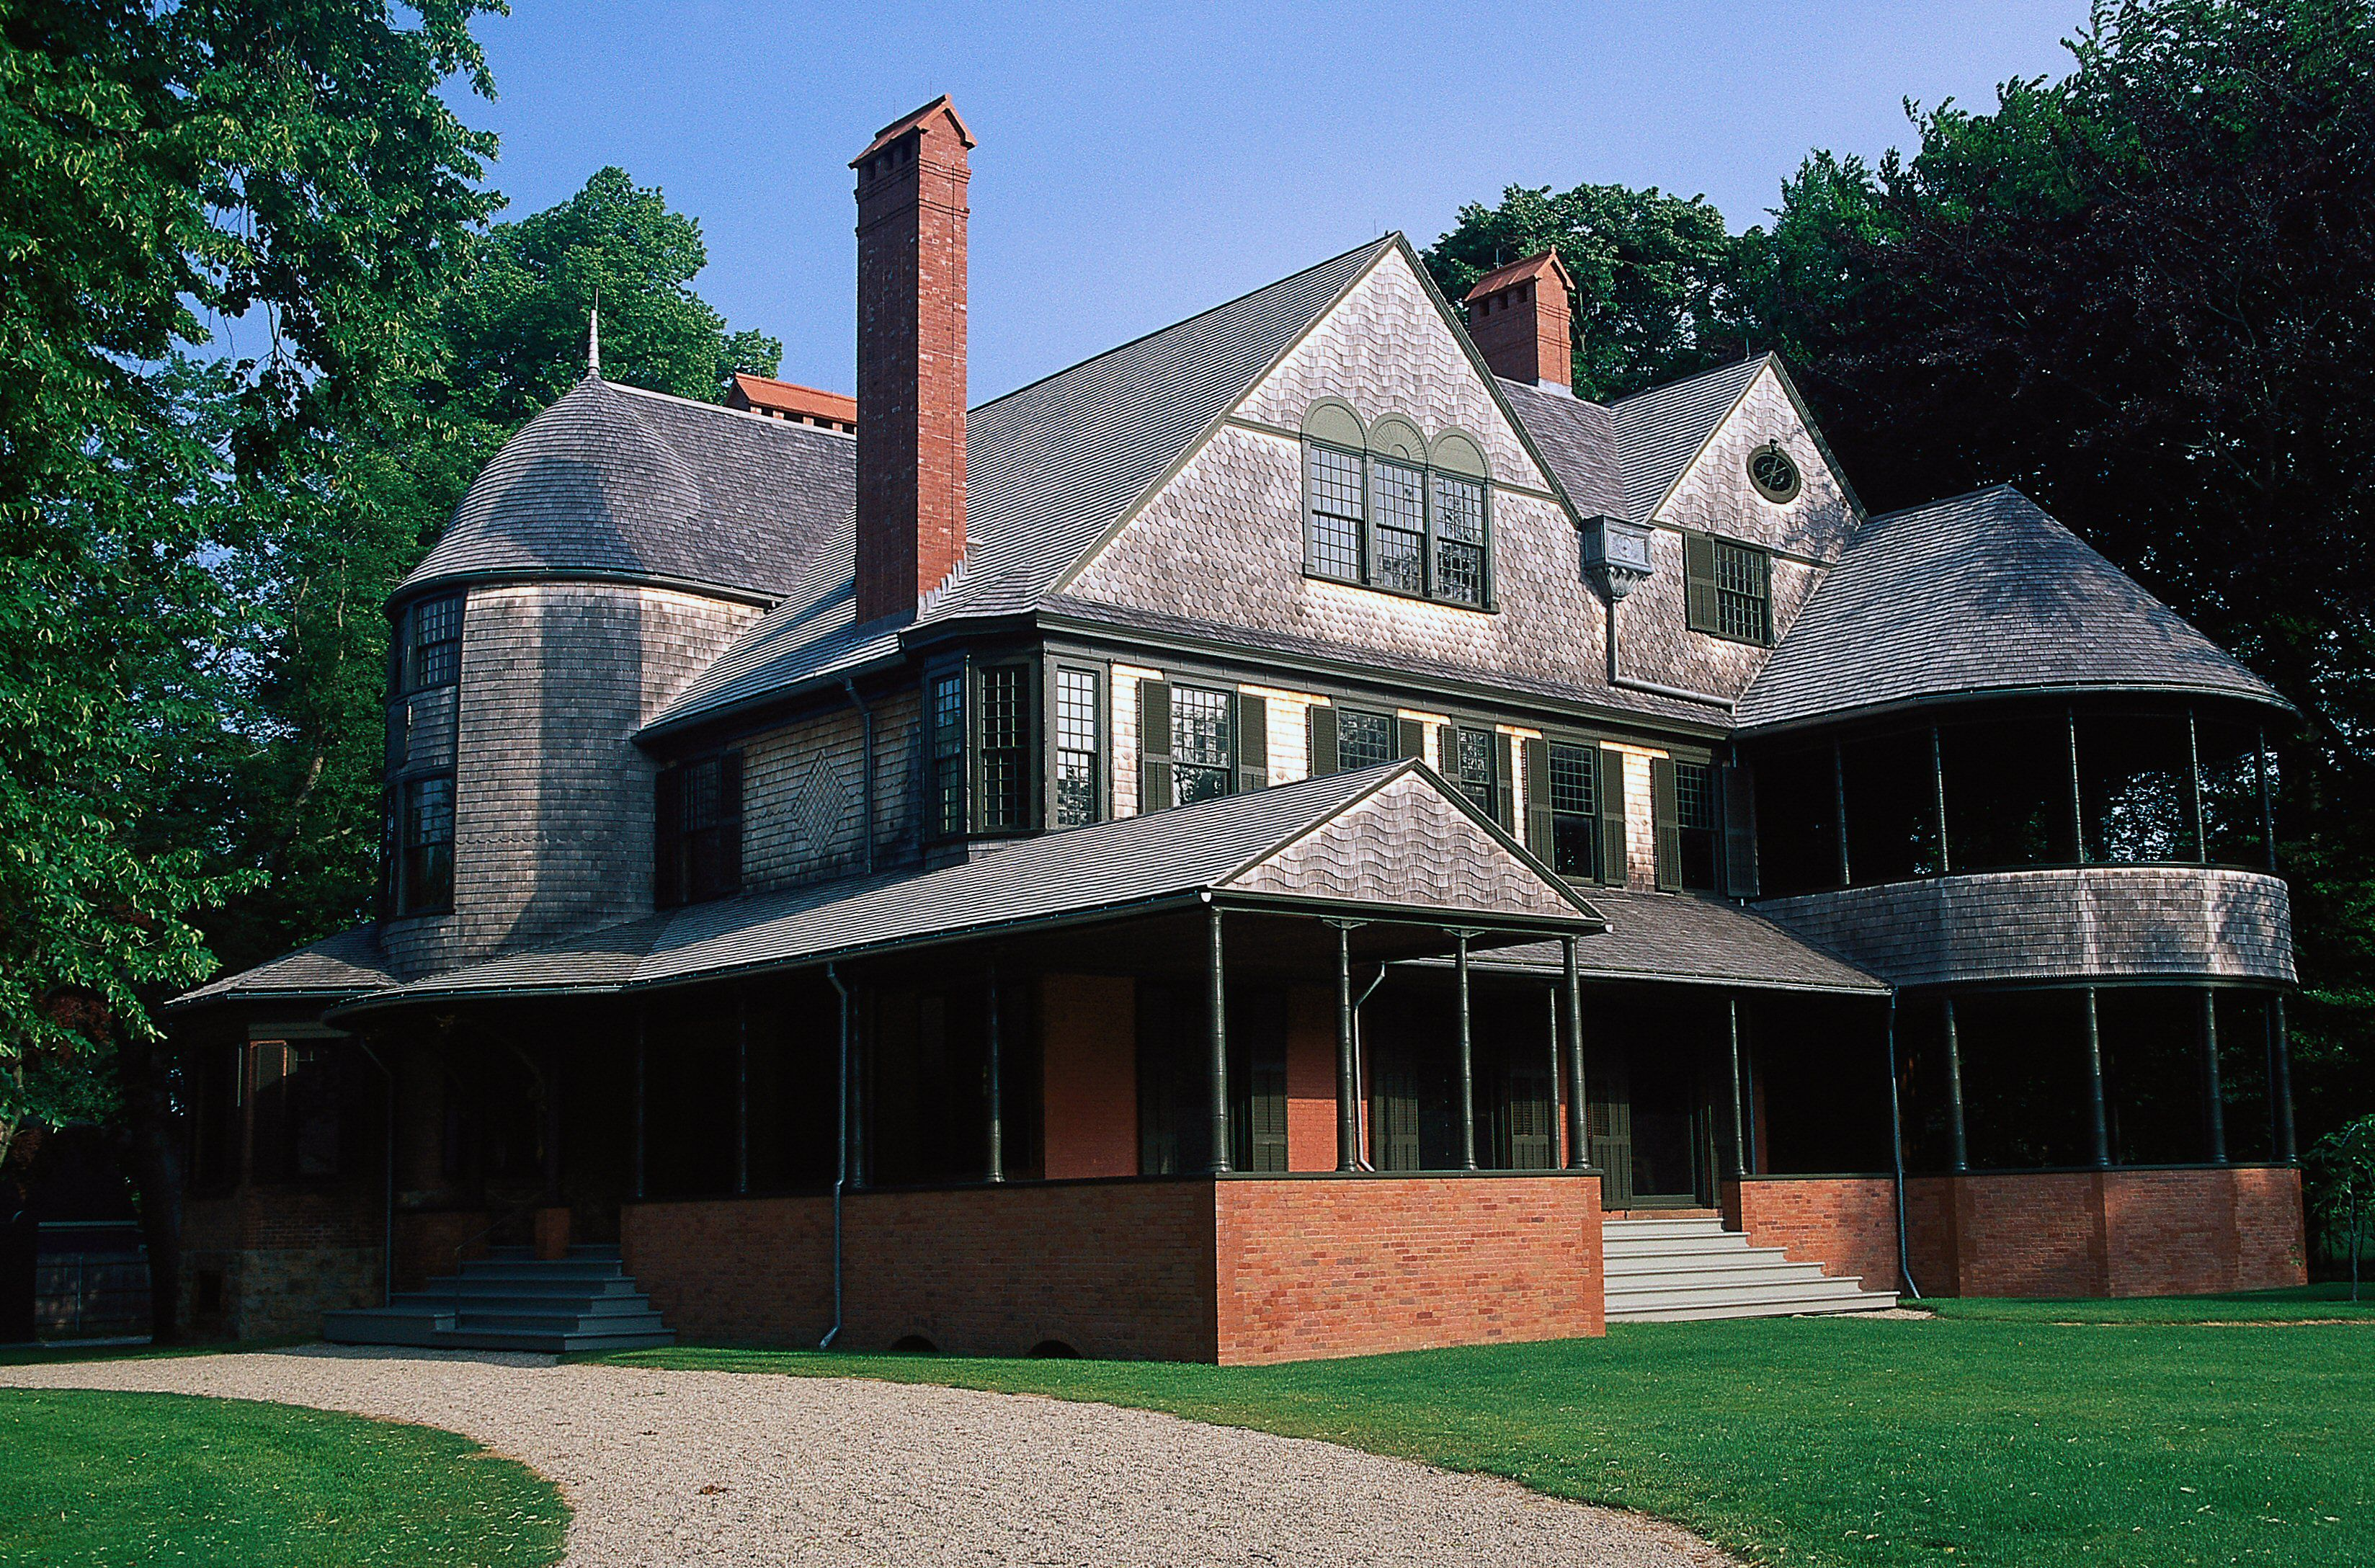 large 2 1/2 story home with wood shingles on the top of a brick first floor, with gables and turret porches and multiple chimneys